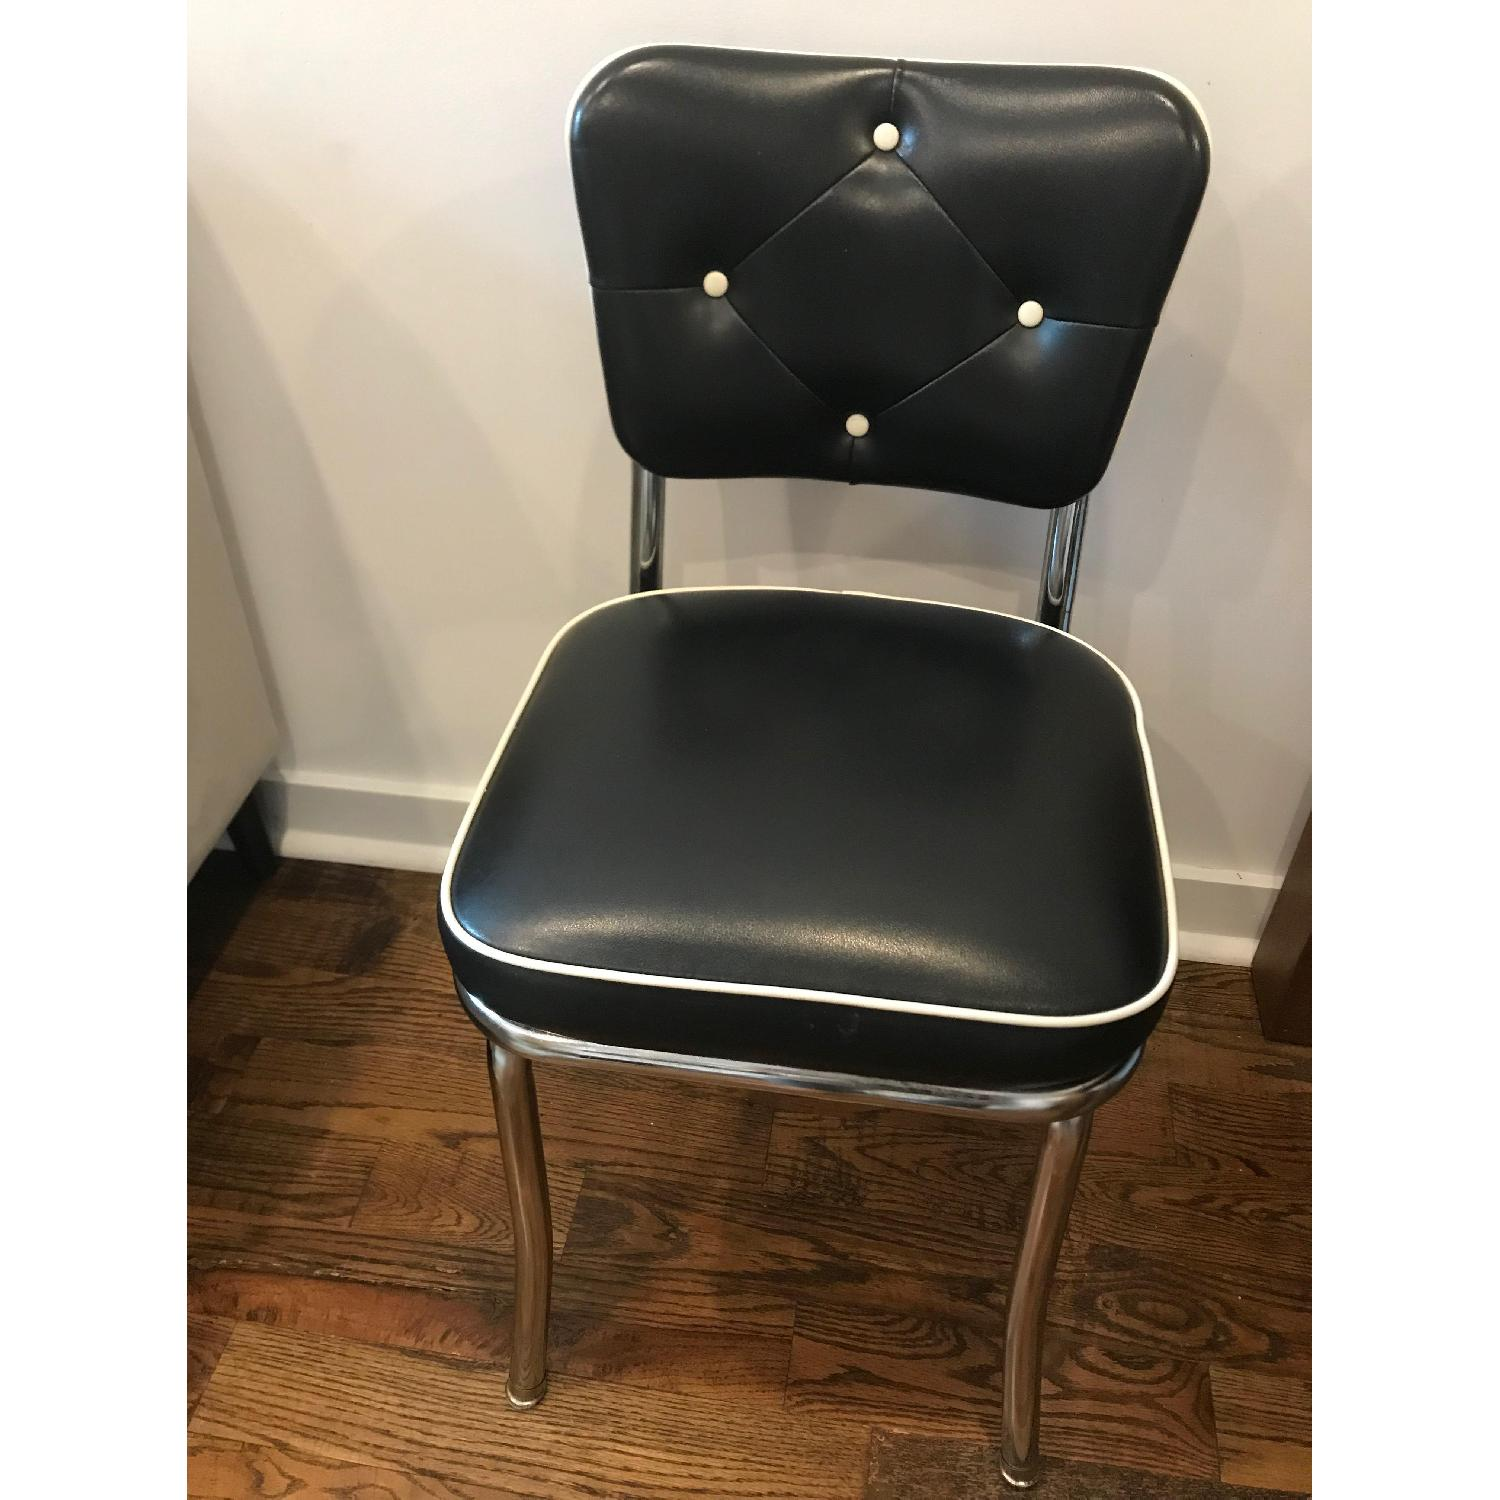 Richardson Seating Corp Lucy Diner Chairs in Black - image-1